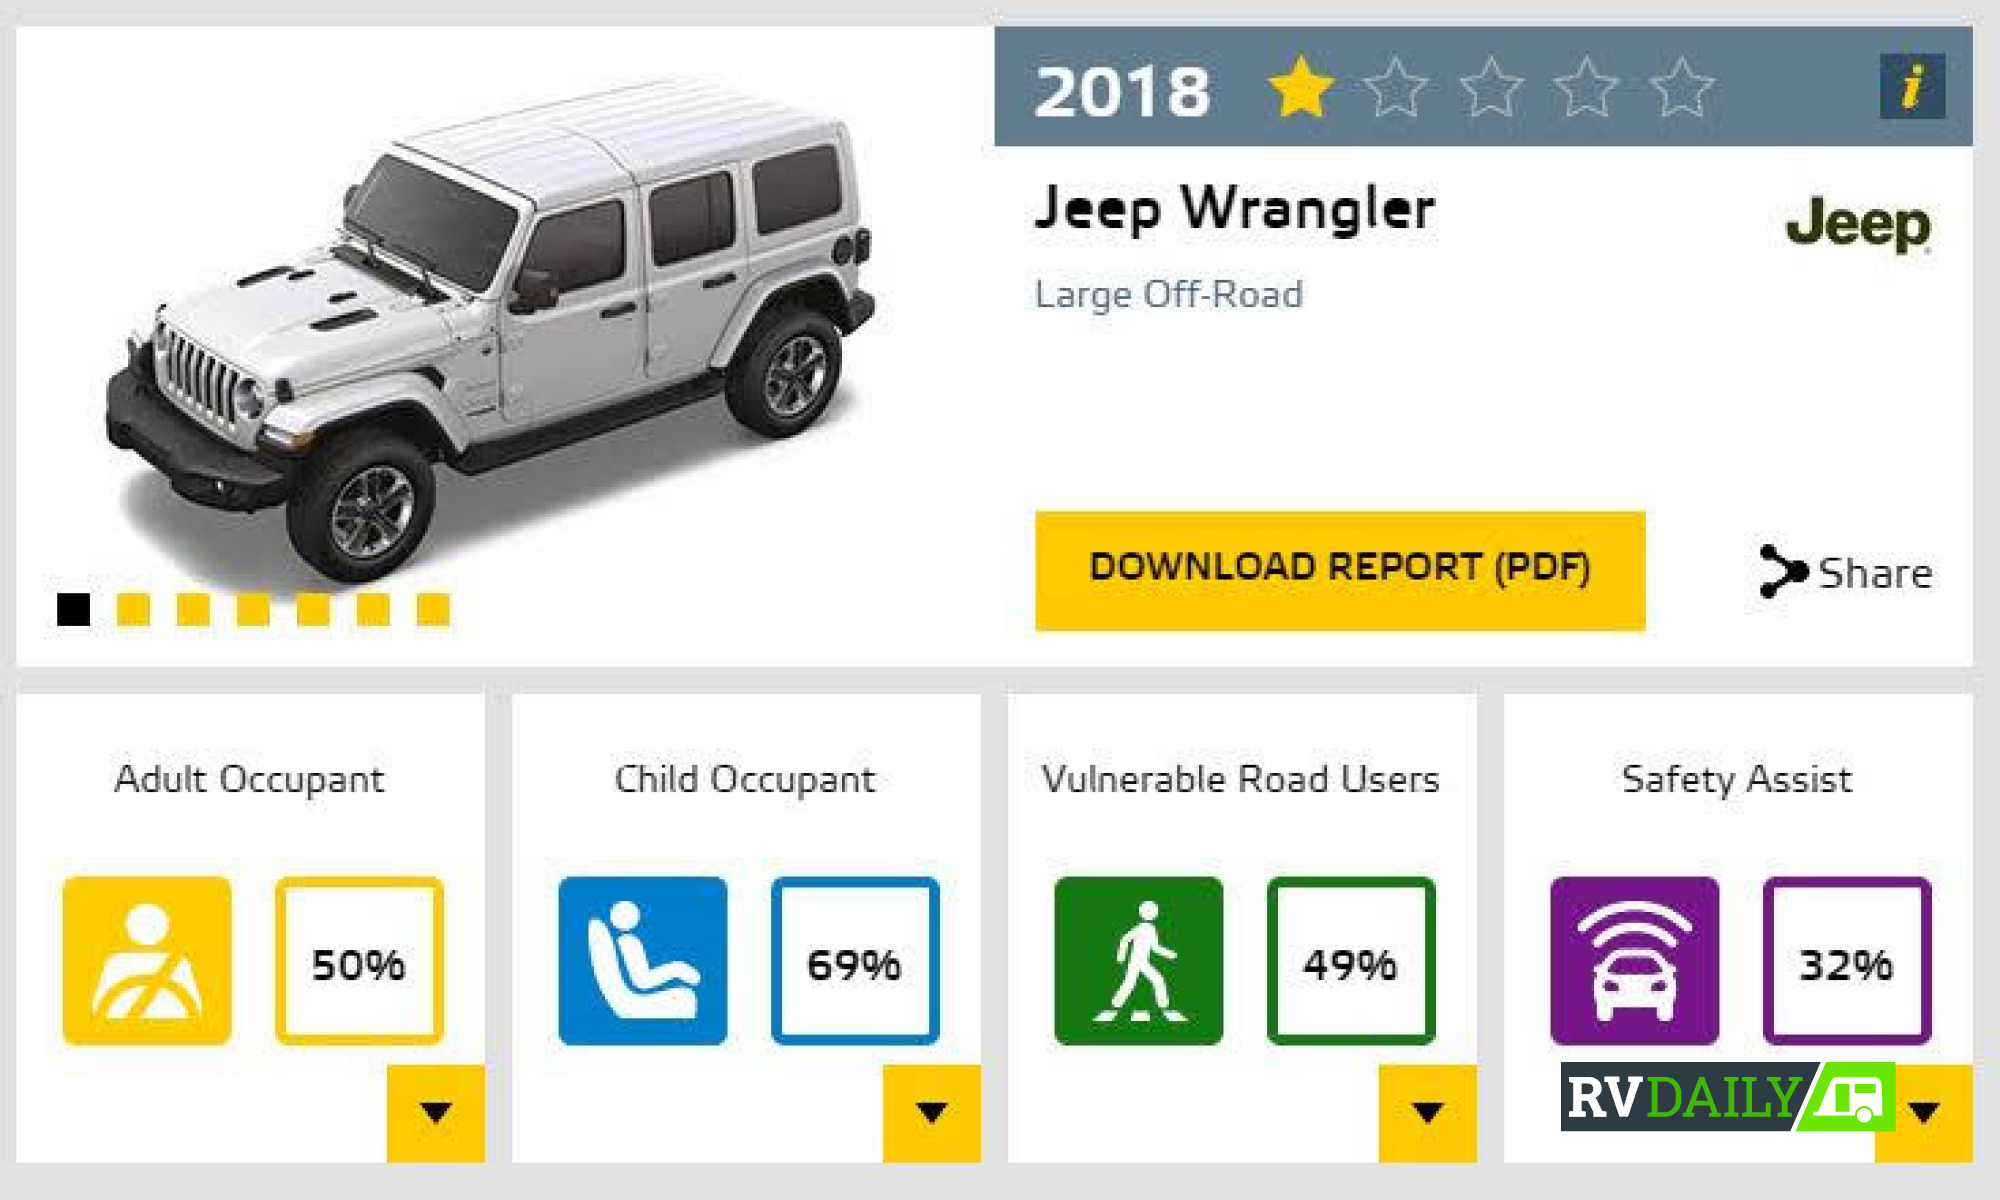 Jeep Wrangler JL rates 1-star for safety